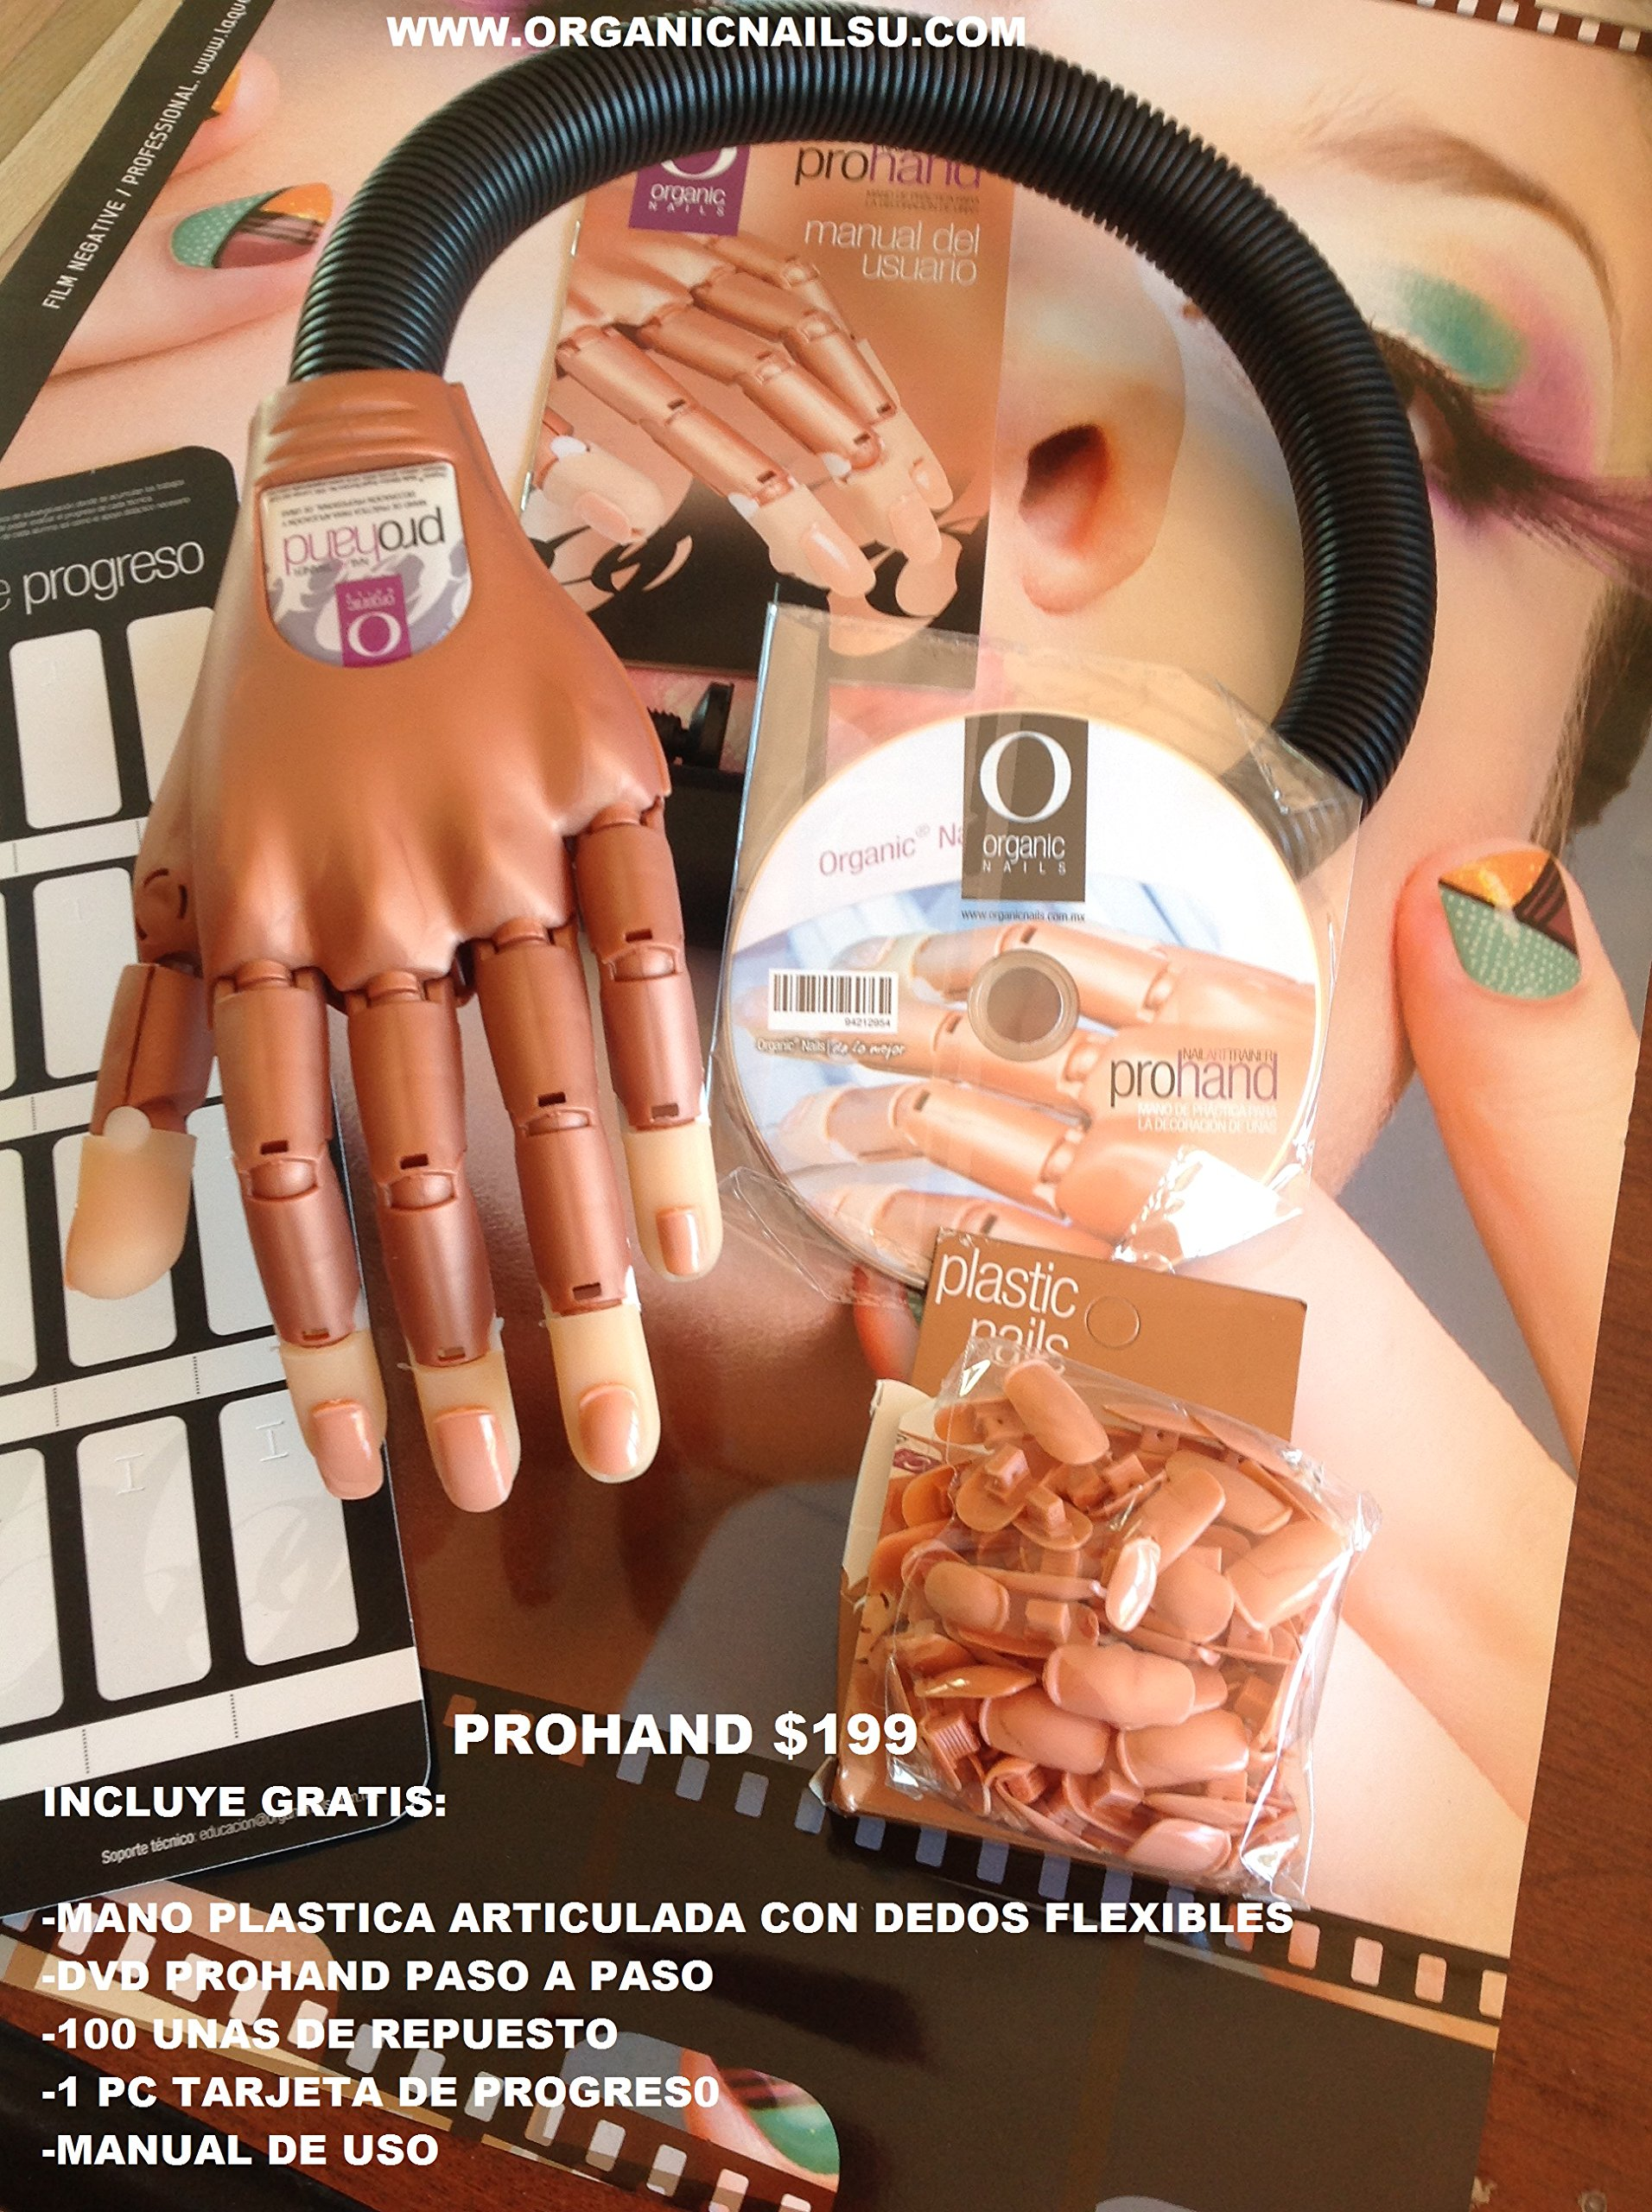 Prohand Free 100 Extra Nails/ Dvd and Cardex